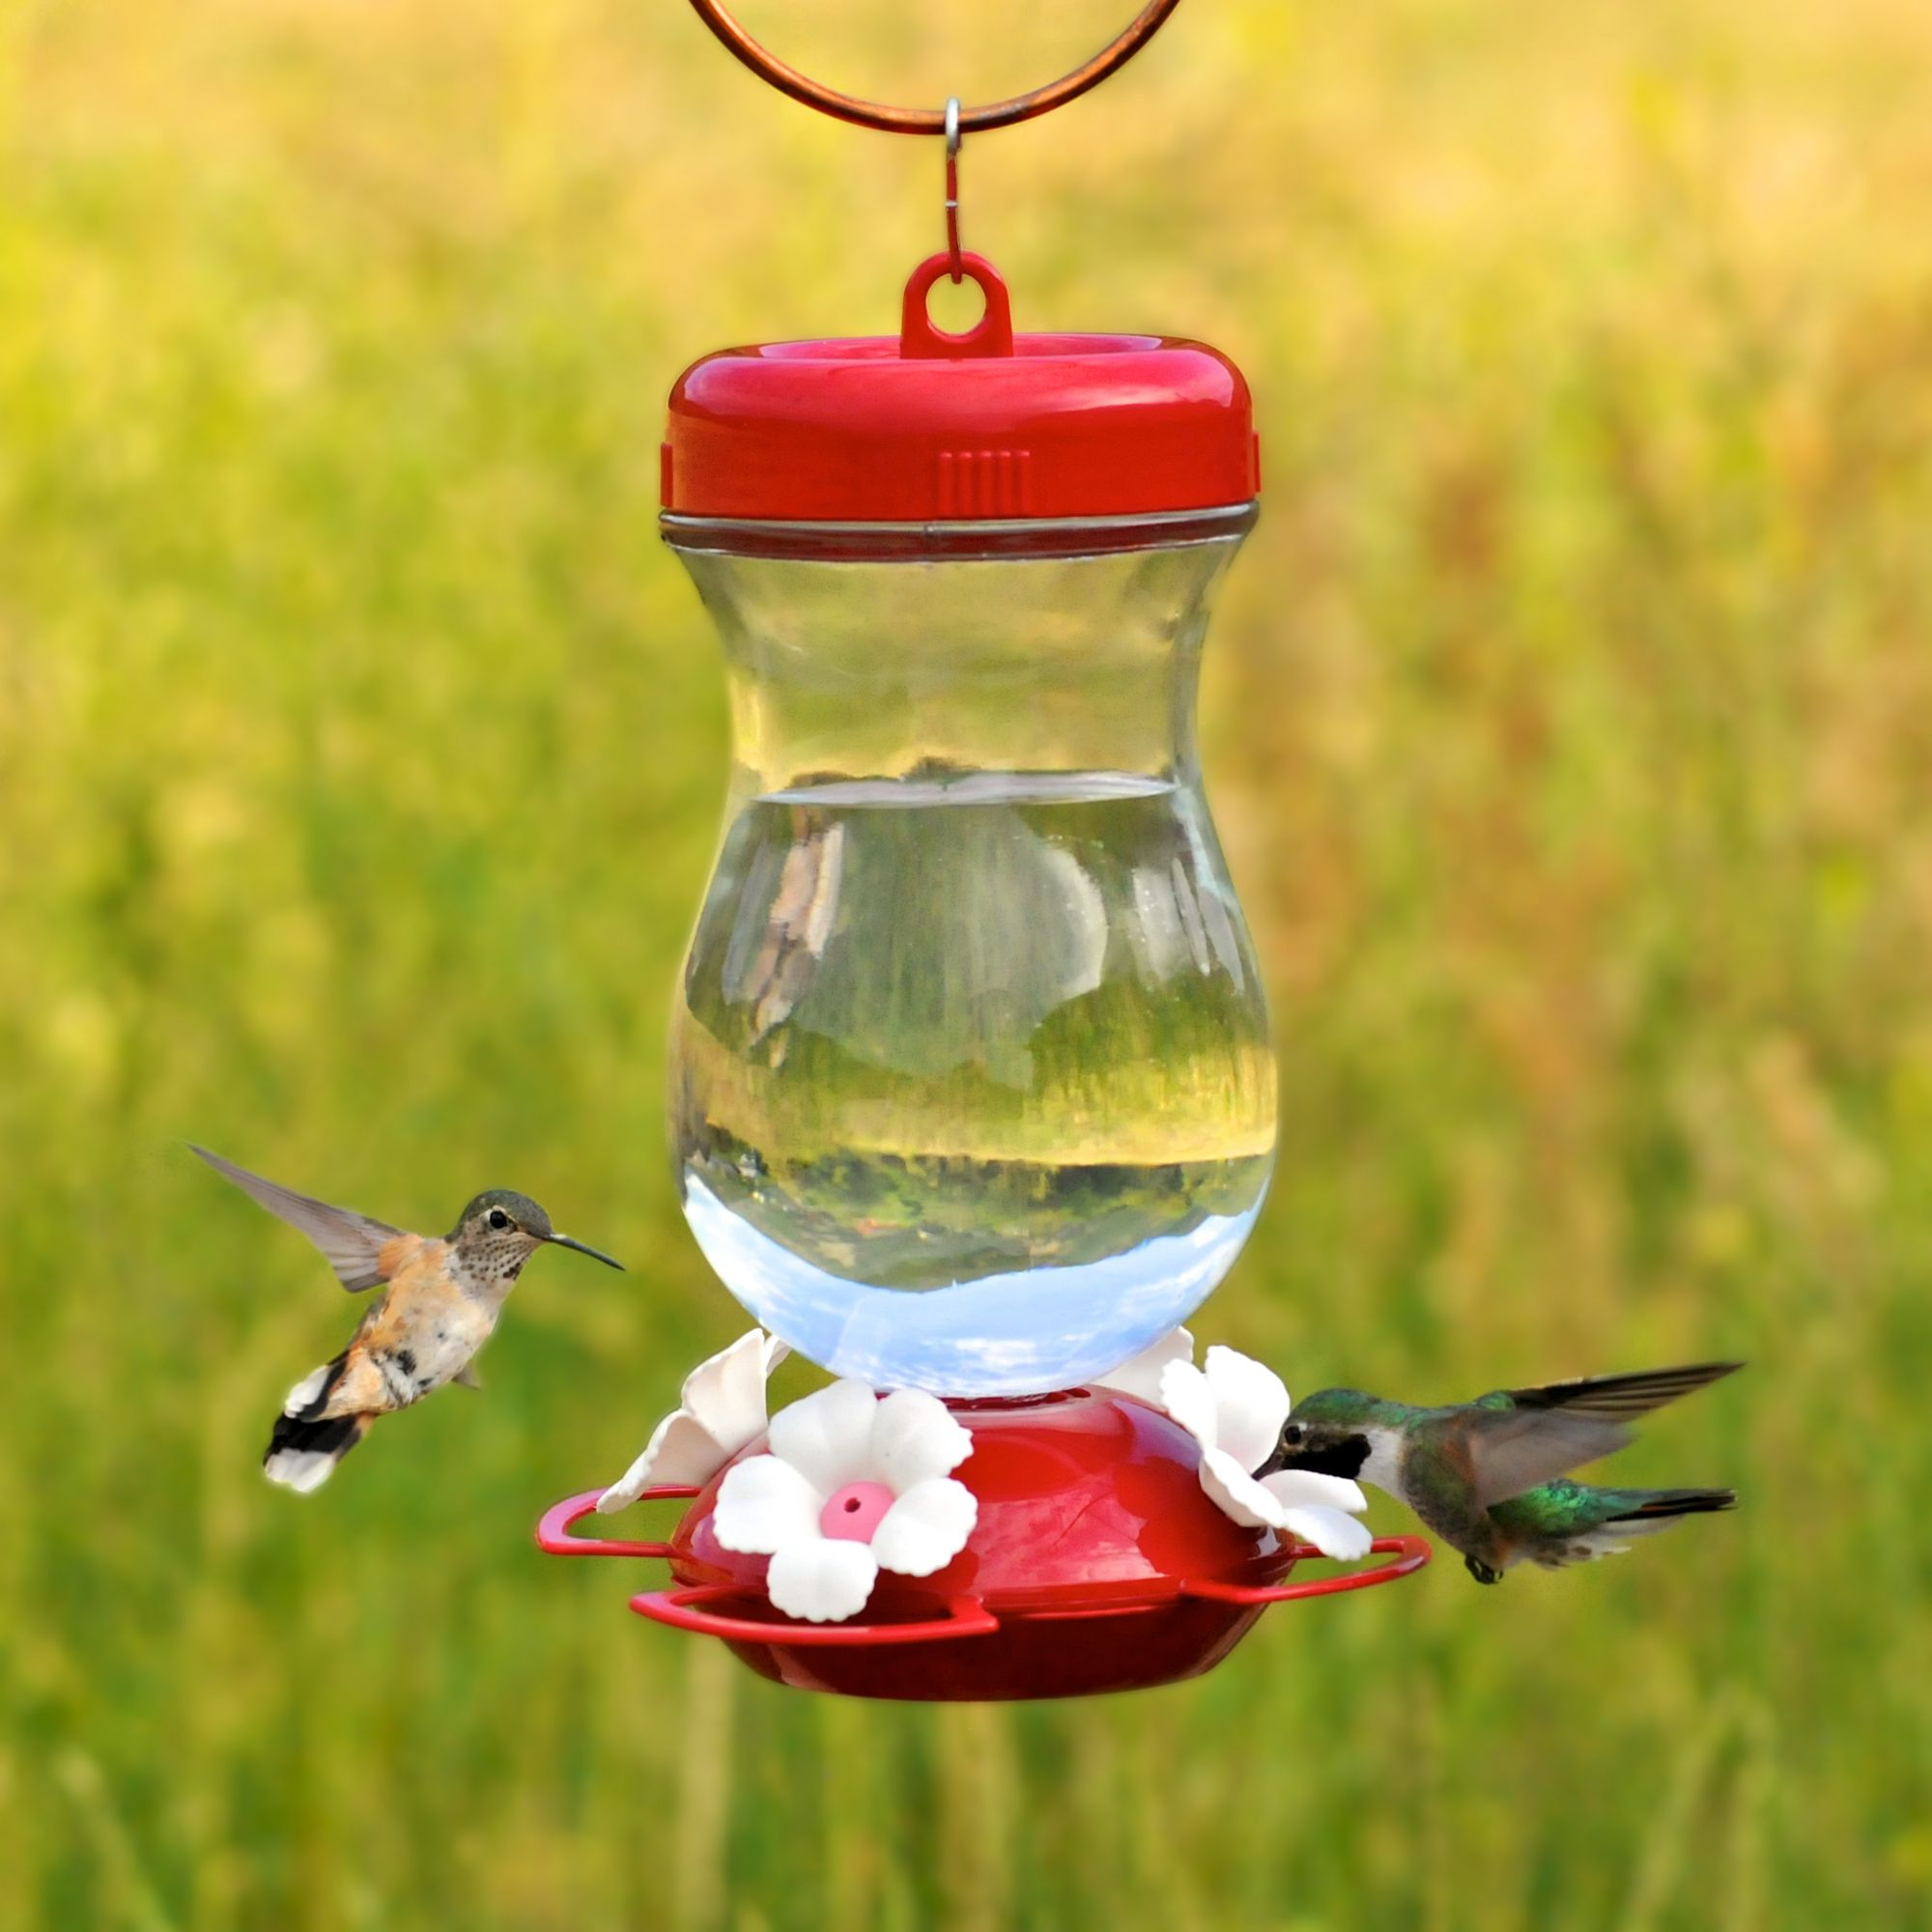 garden wildlife squirrel feeders reviews shop sale product hummingbird pl lowes outdoors display at com decor feeder bird glass for